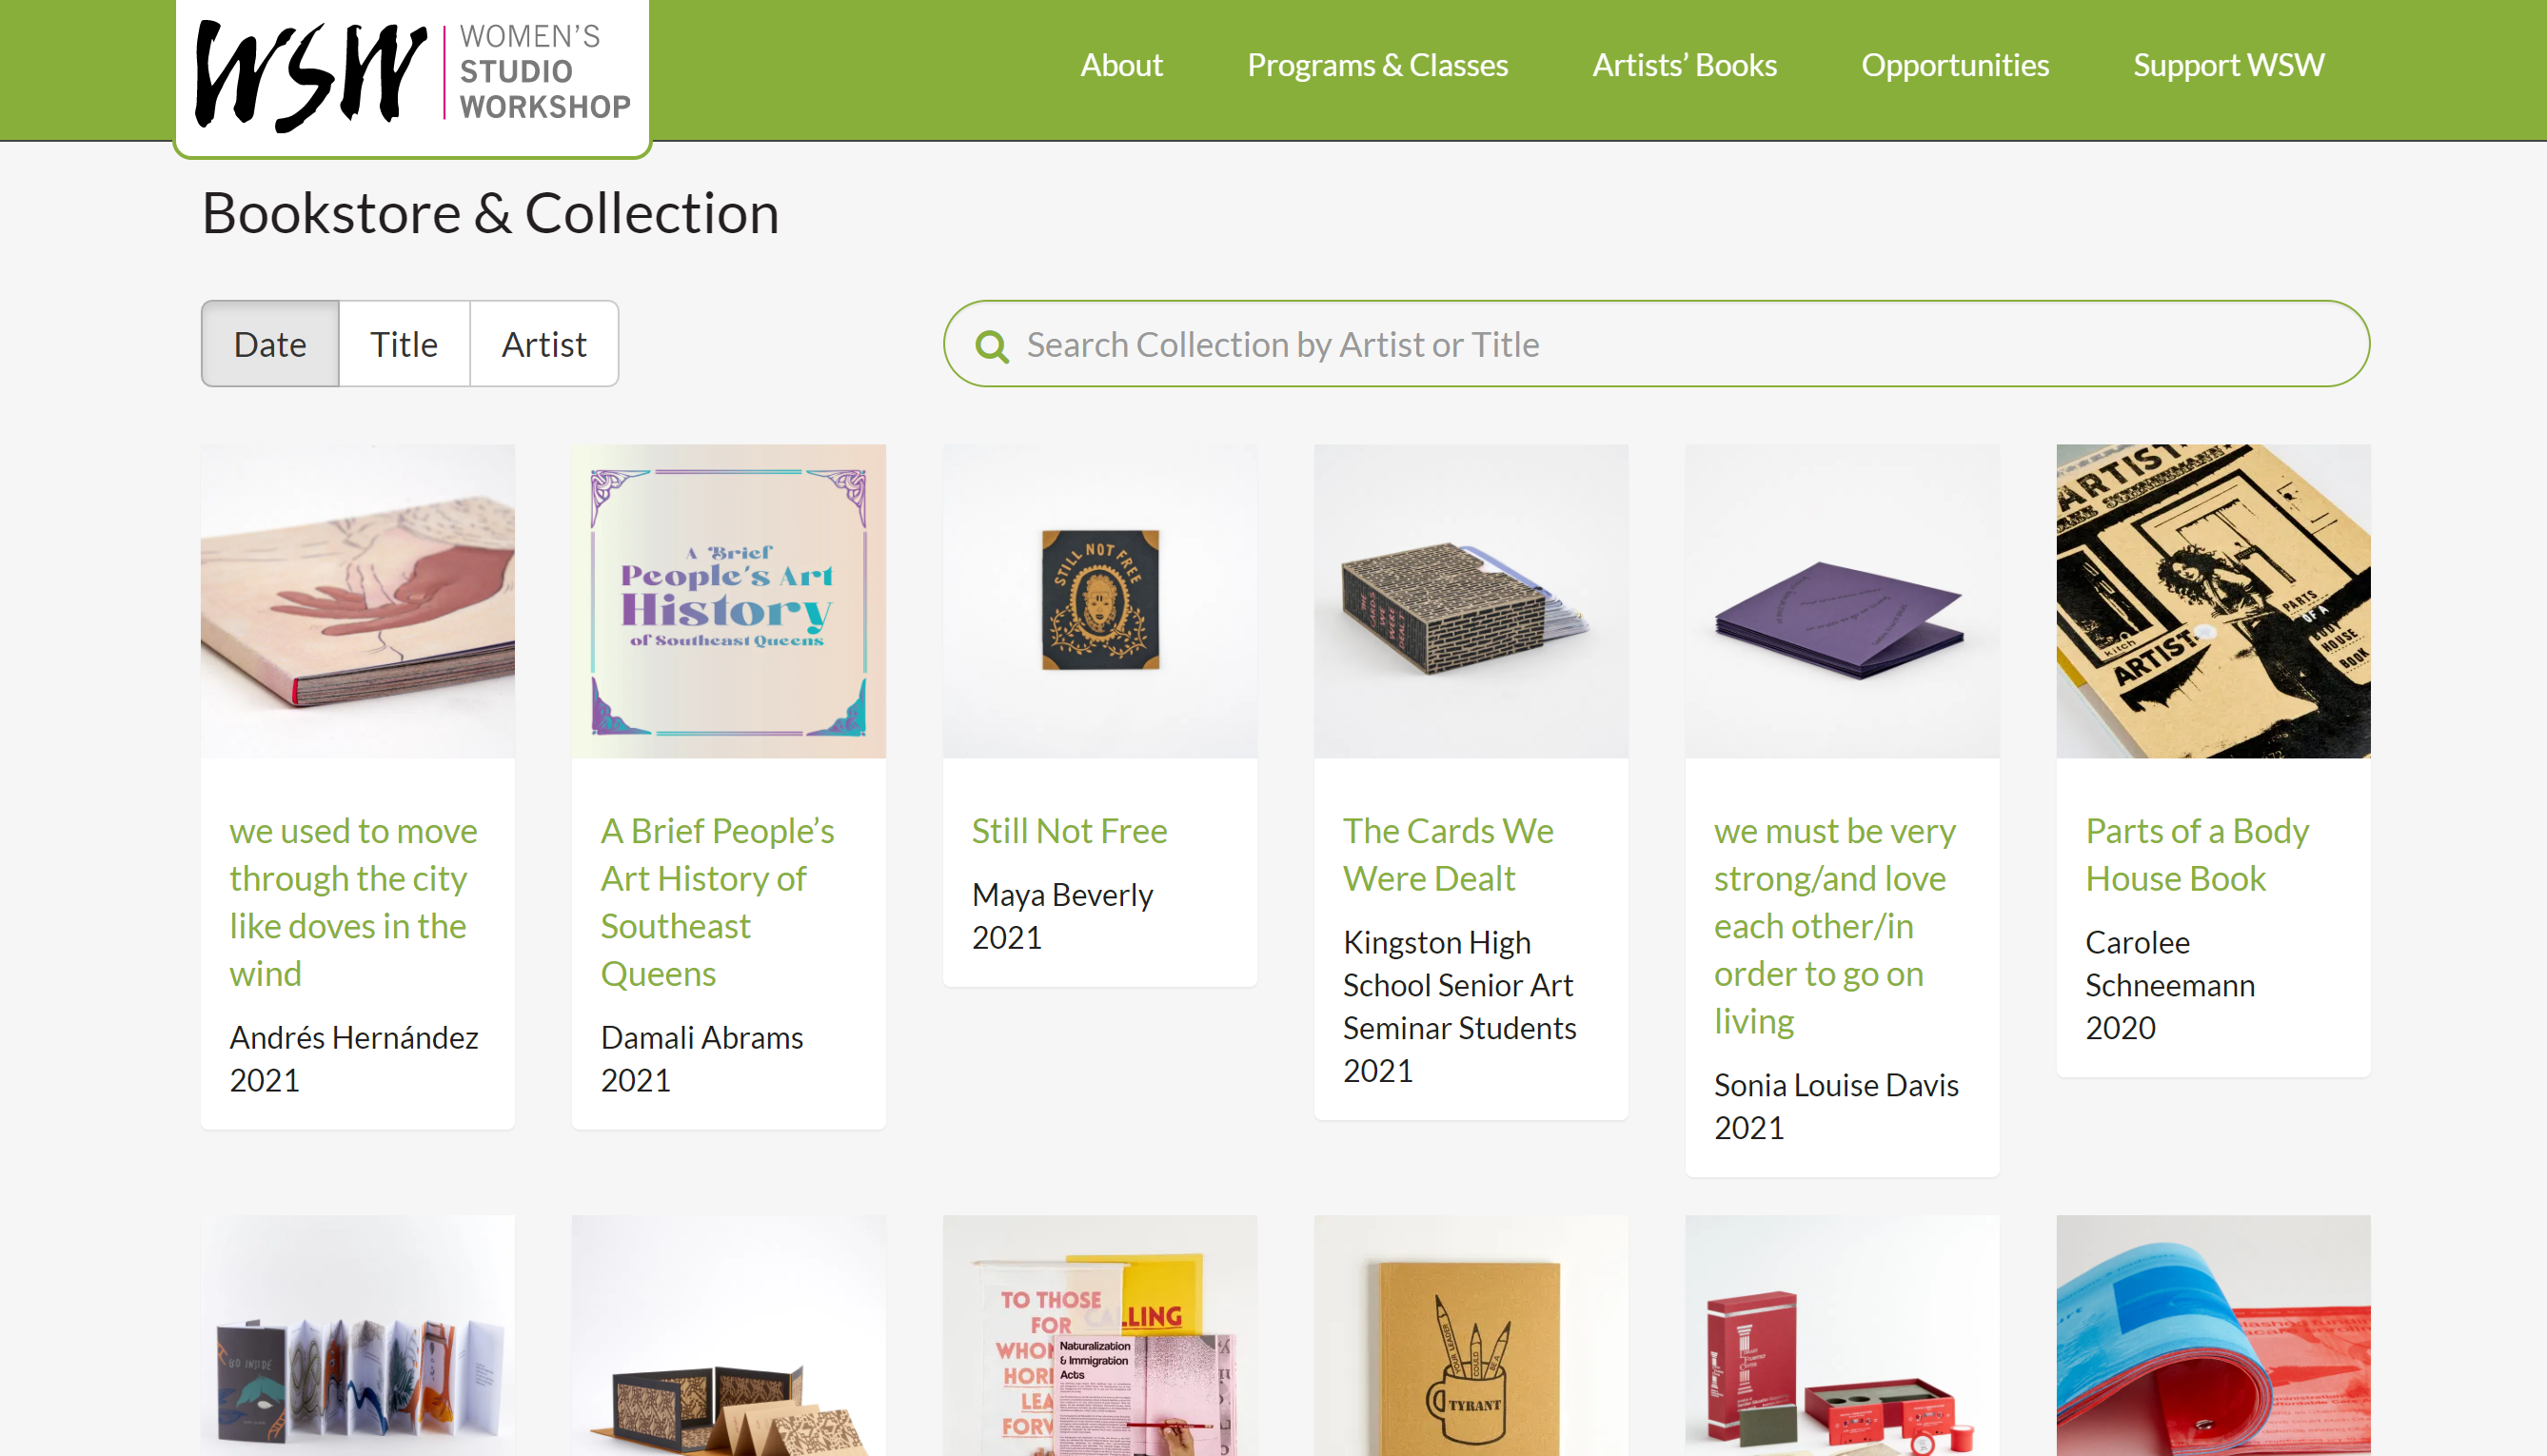 A screenshot of the Women's Studio Workshop bookstore and collection of artists' books